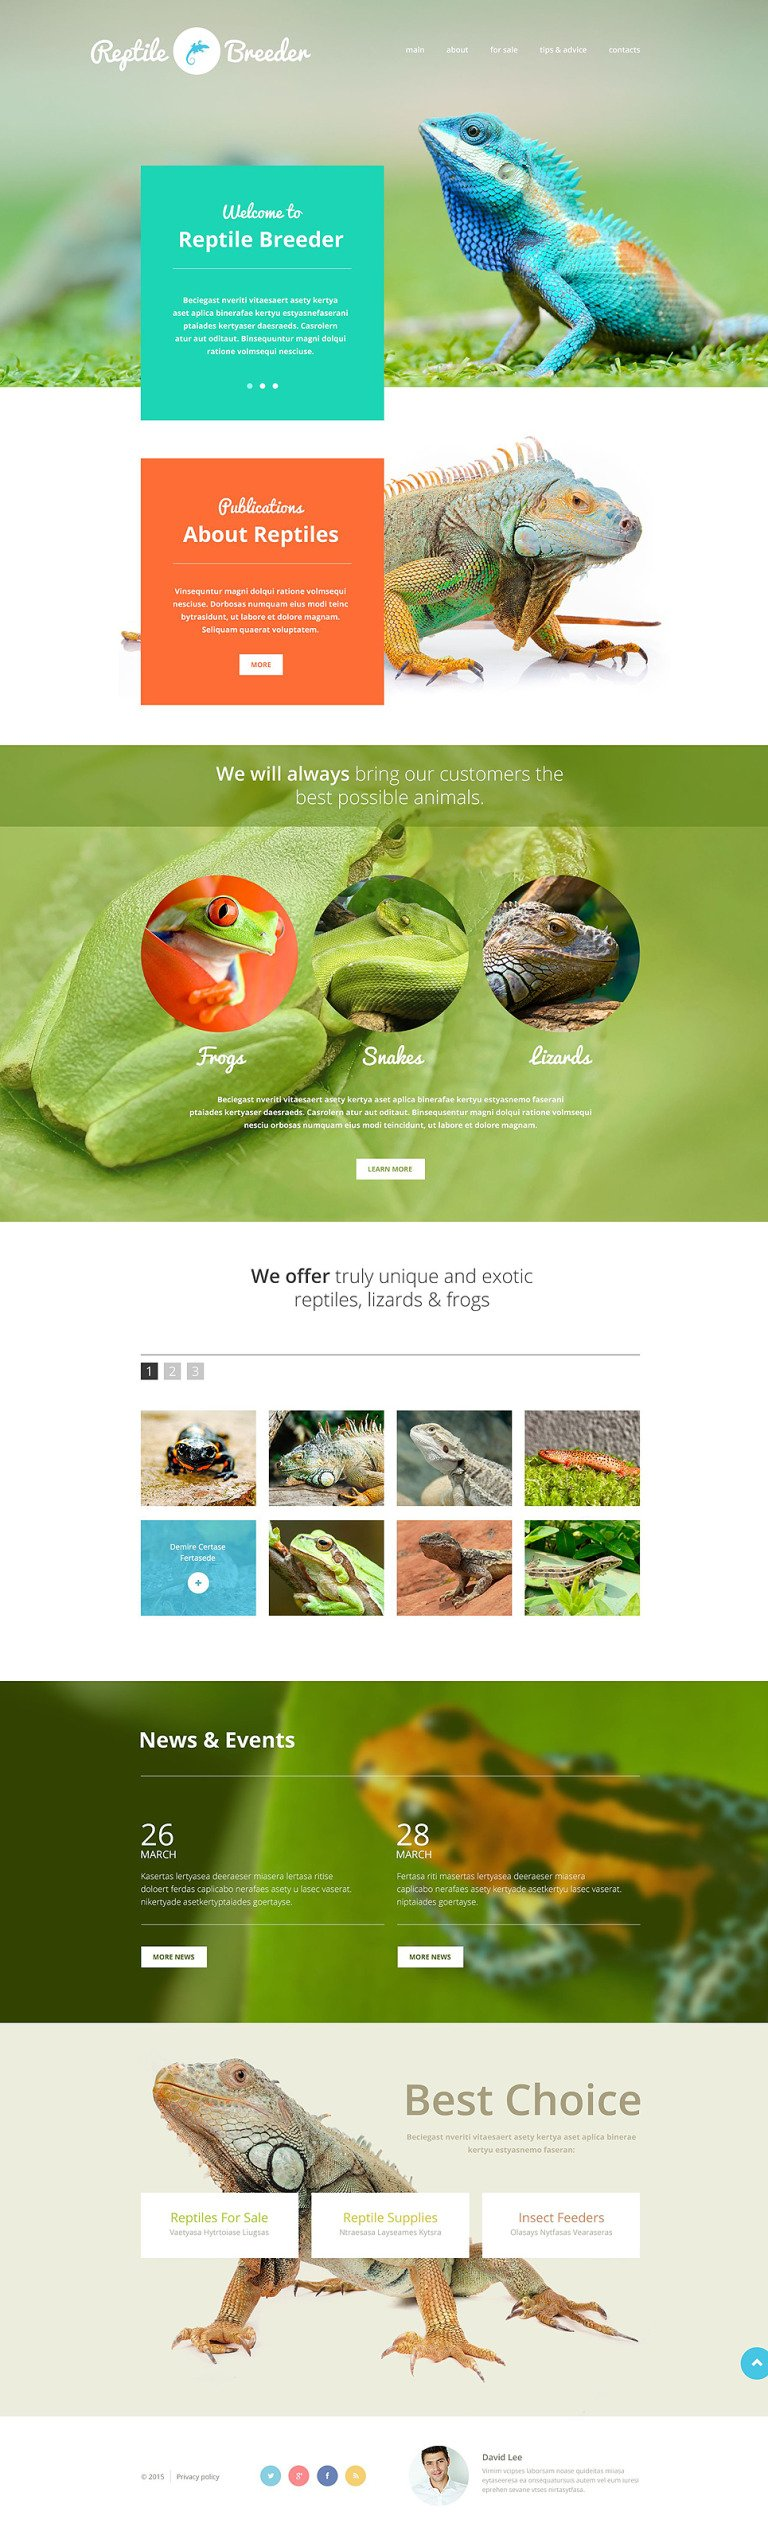 Reptile Breeder Website Template New Screenshots BIG